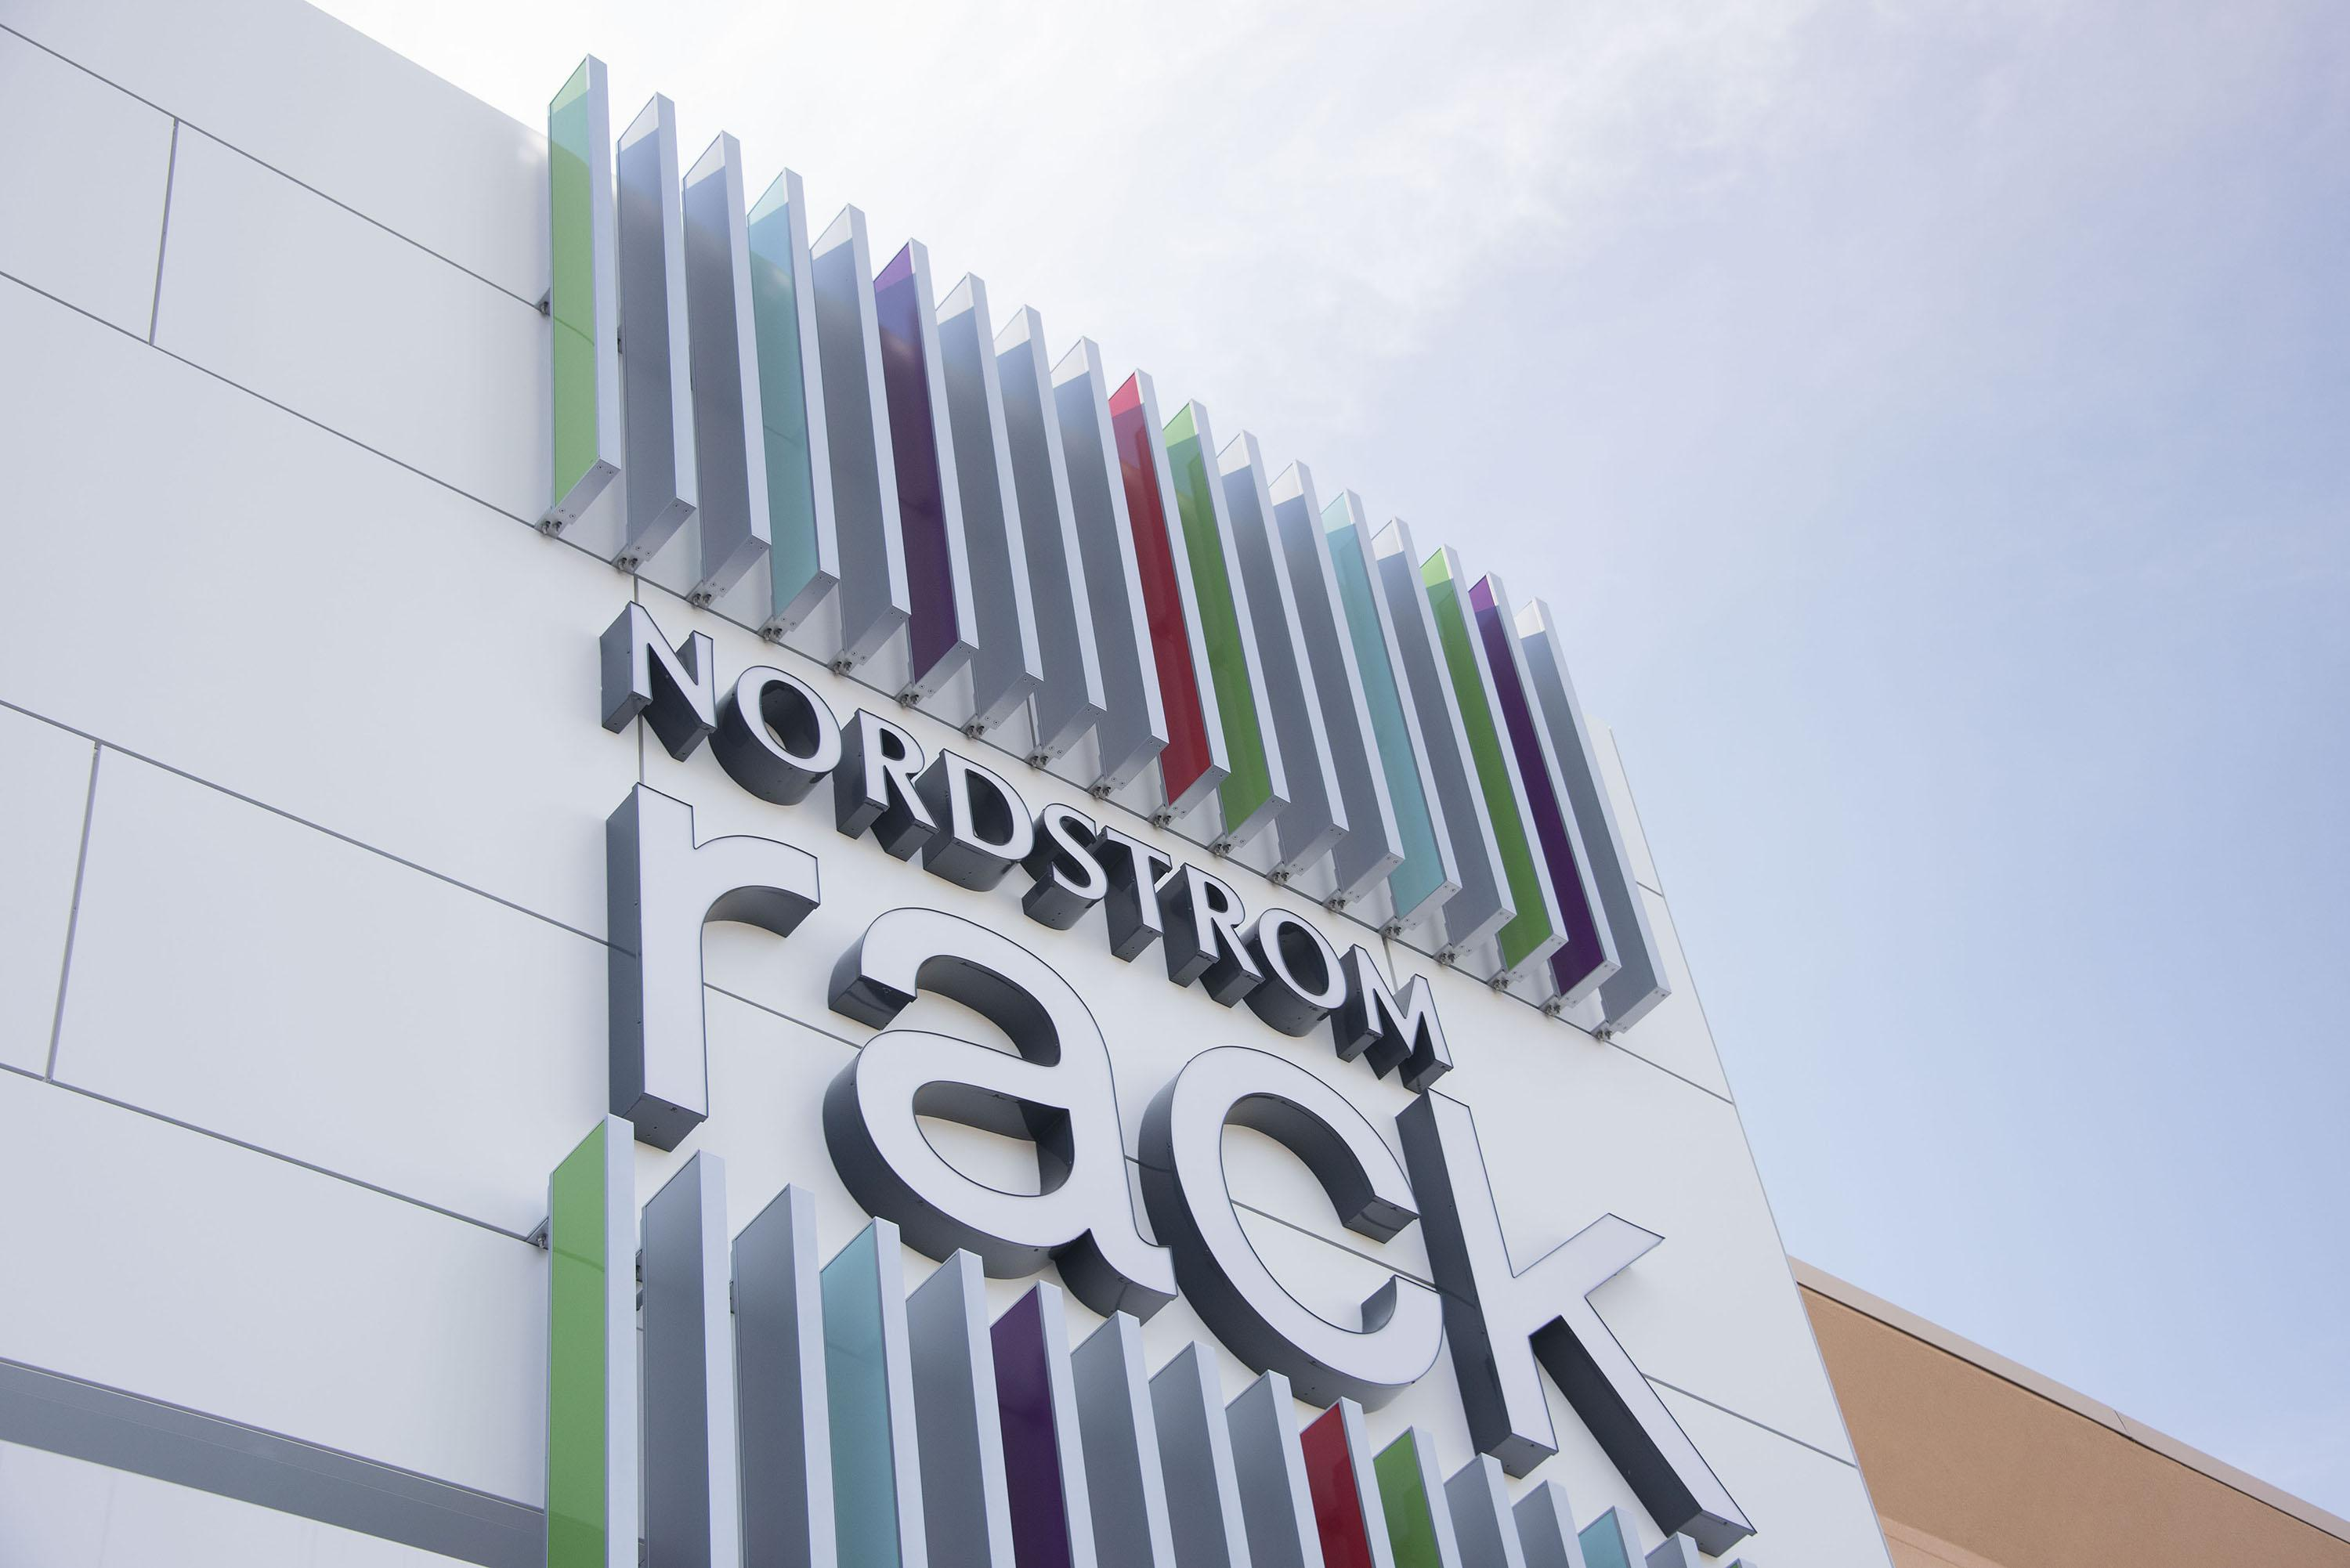 Three Black Teens Falsely Accused Of Theft At Missouri Nordstrom